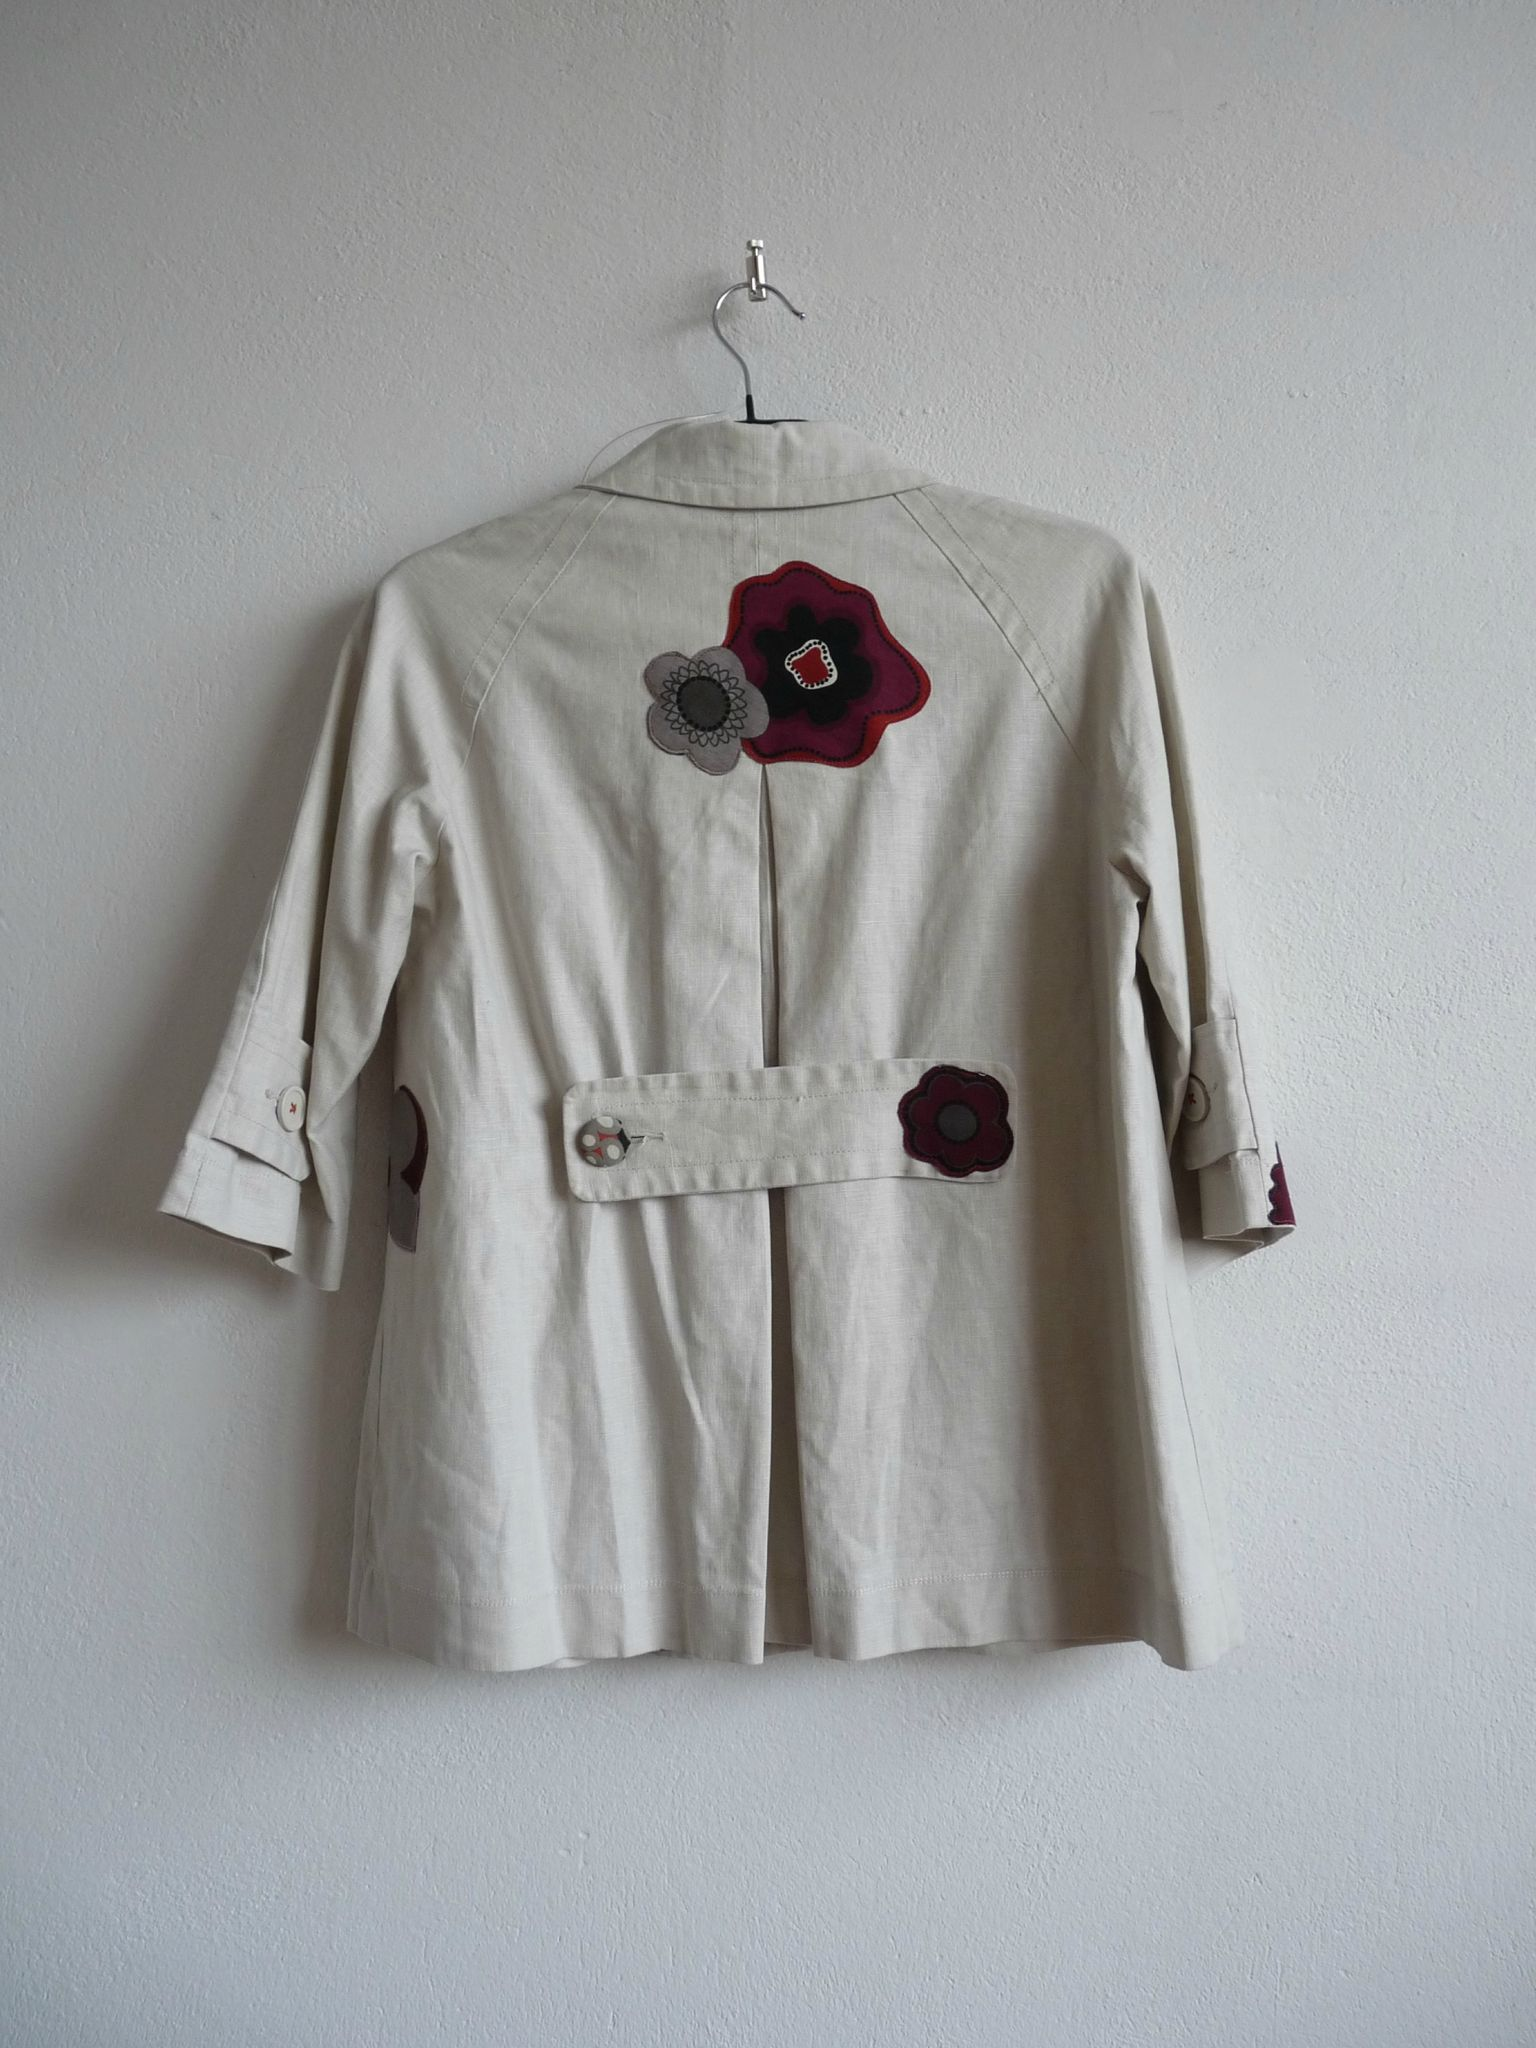 31 dos trench coat